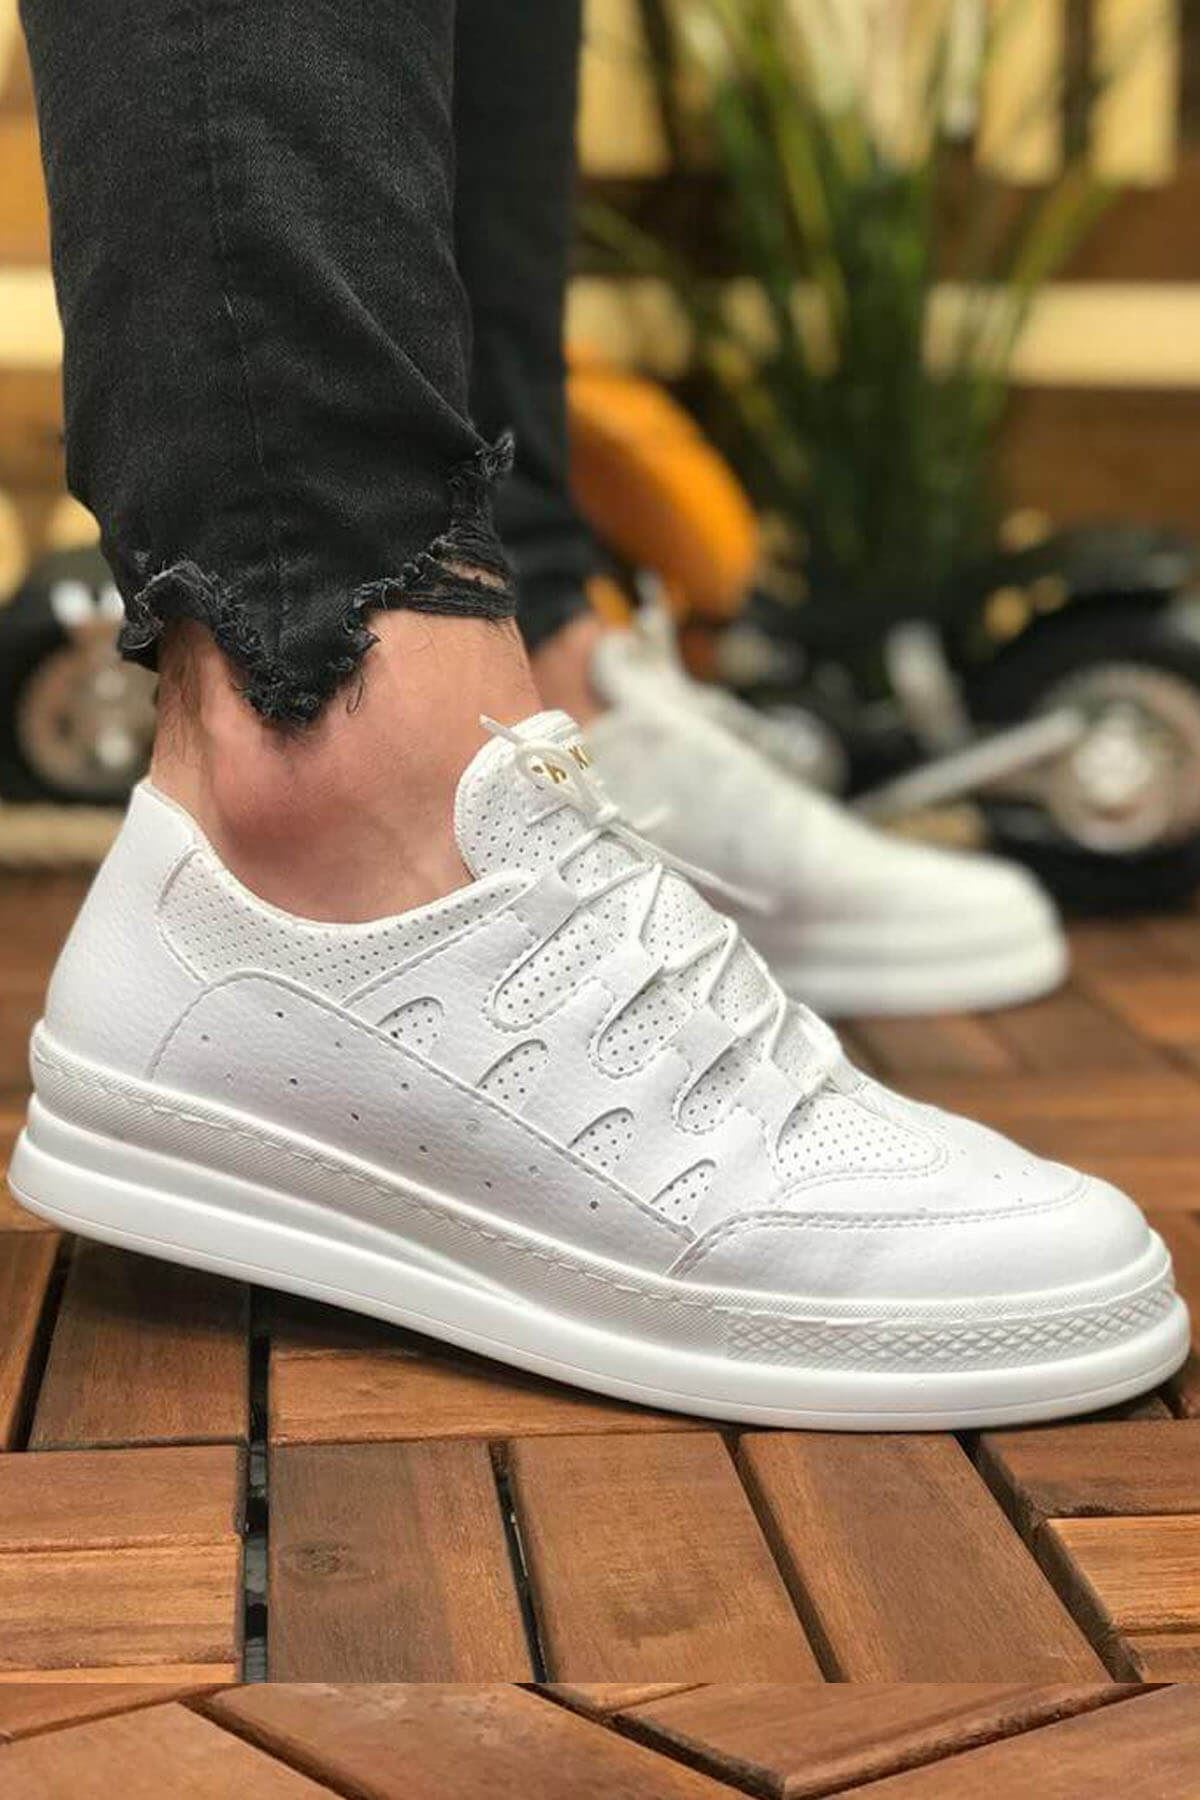 Men's White Casual Shoes